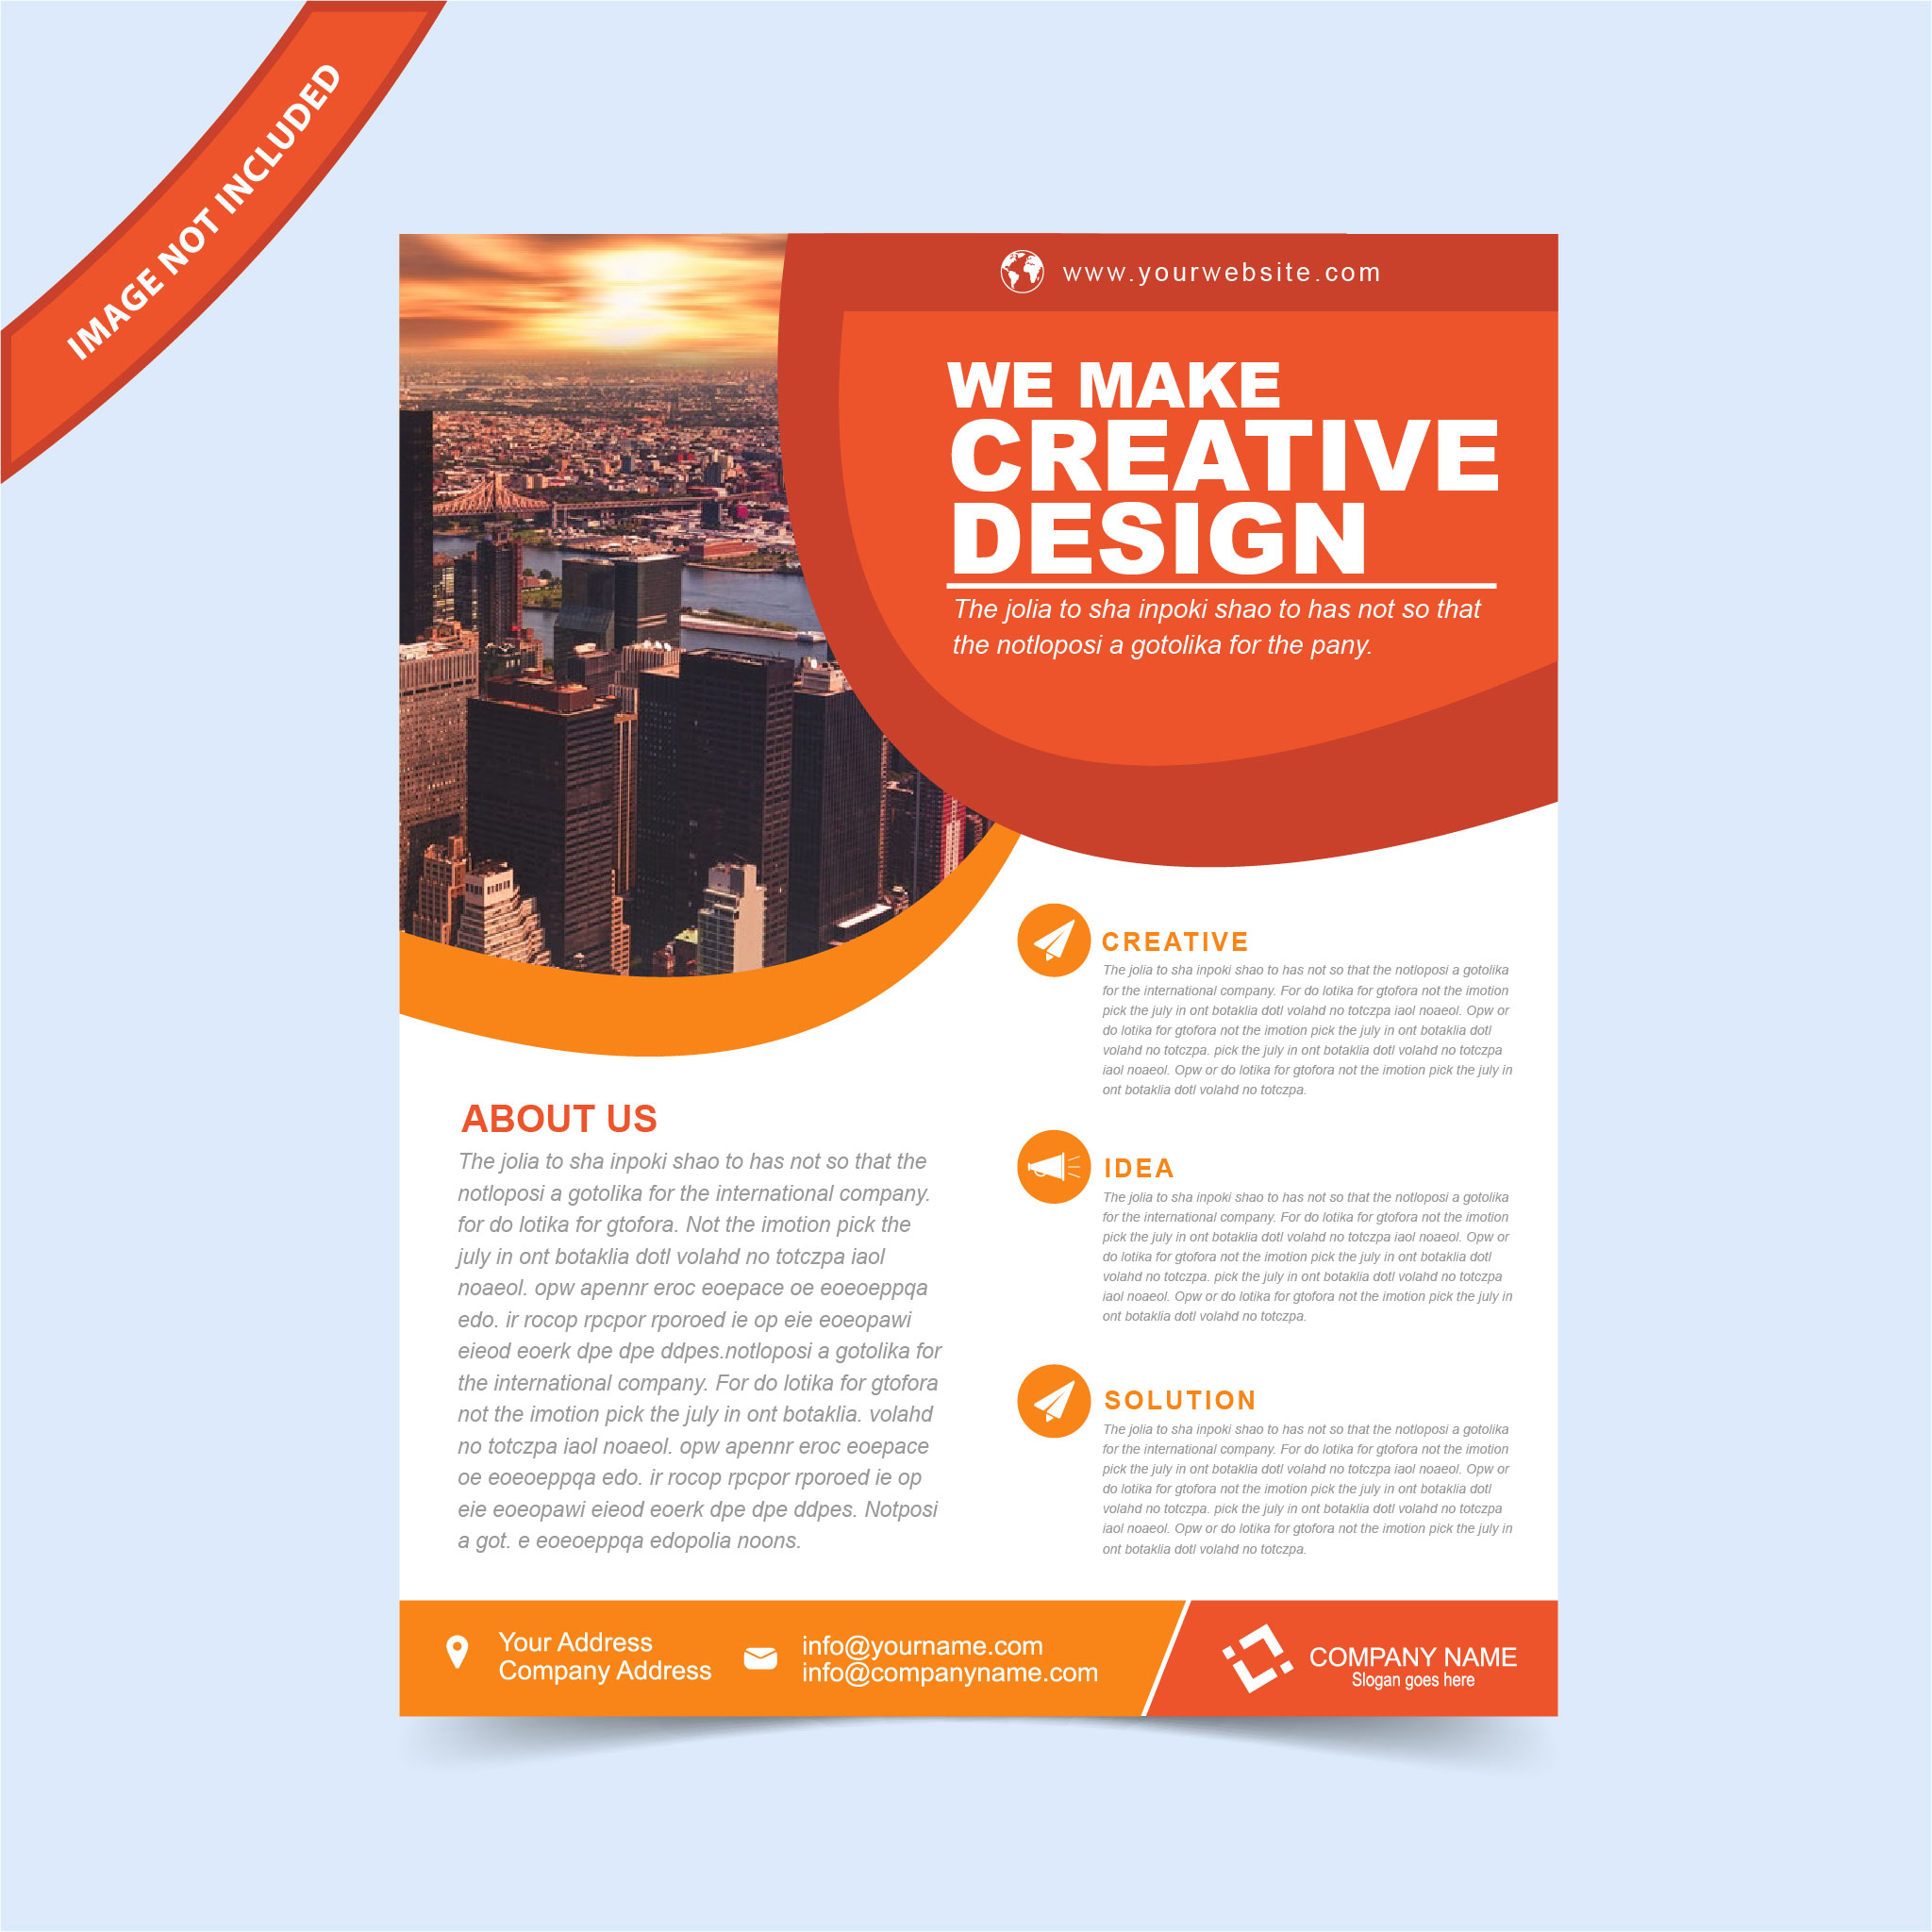 EPS Flyer Template Free Download Print Ready Wisxicom - Free templates for brochures and flyers